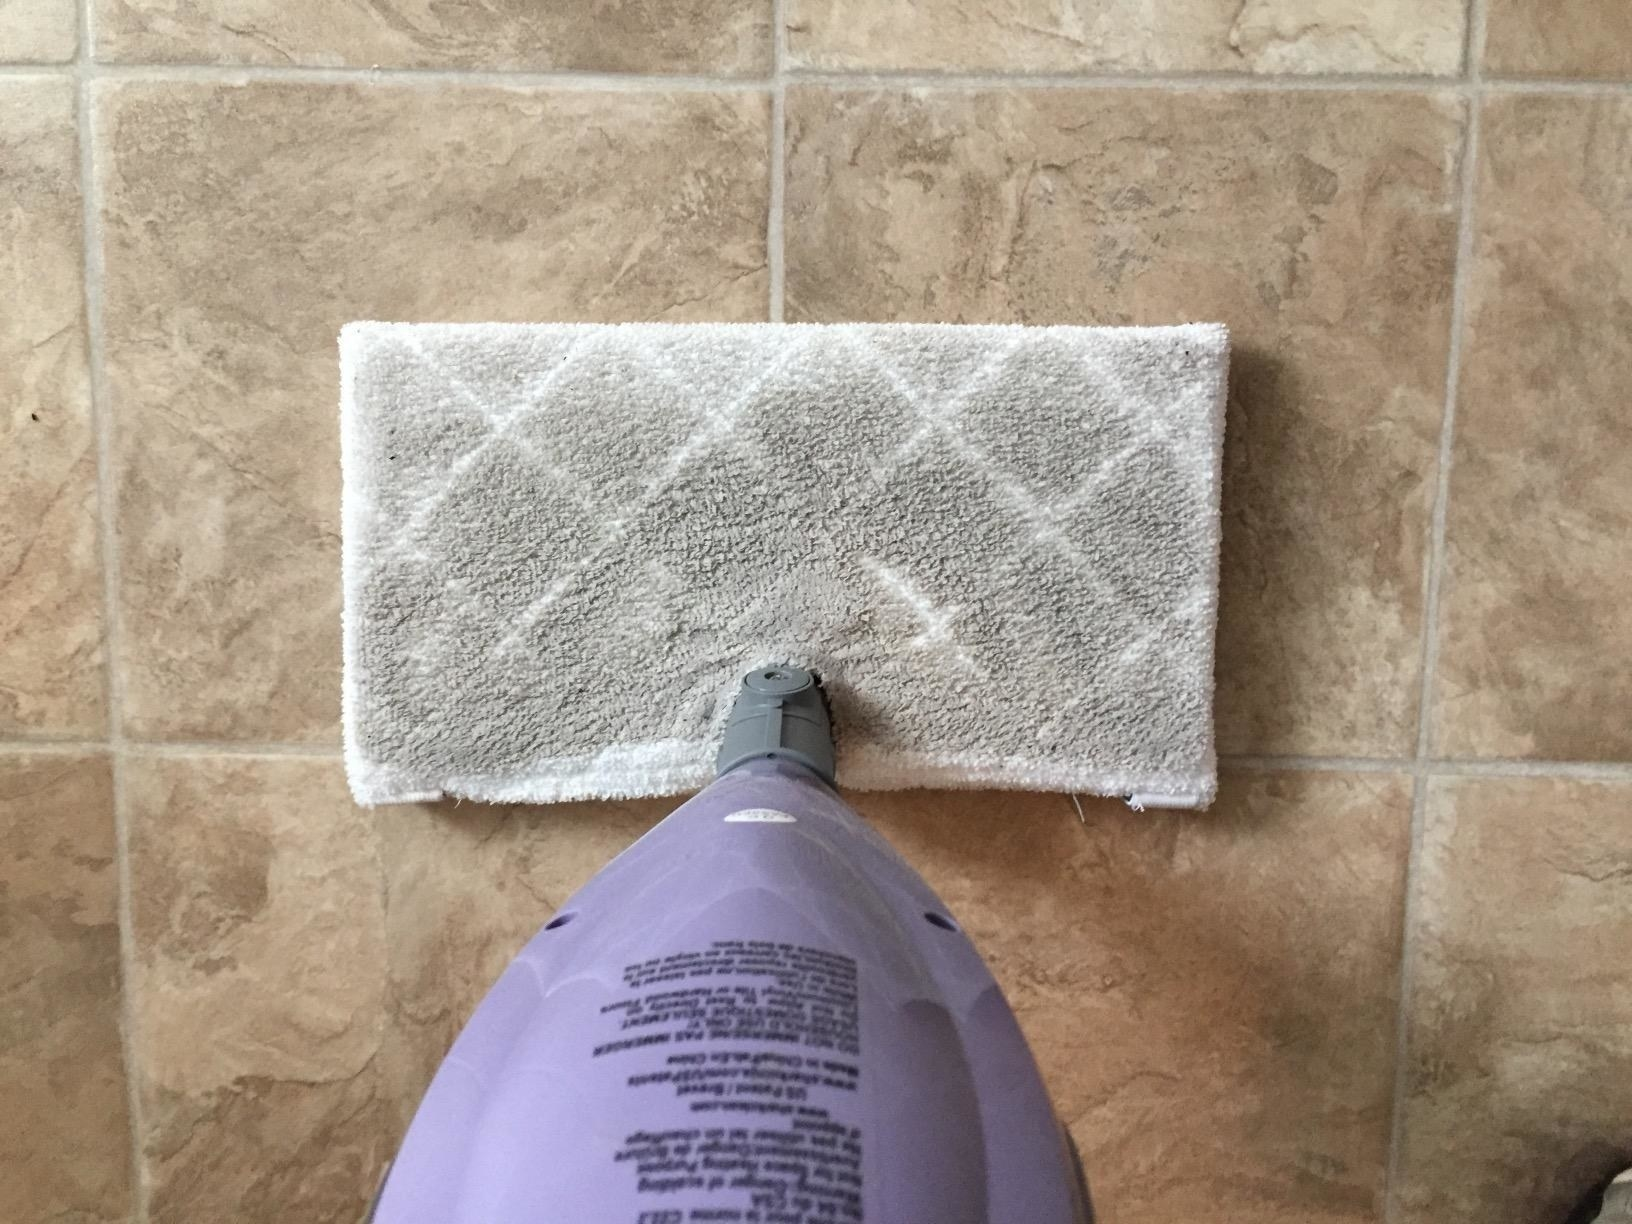 A reviewer's dirty mop head on their tile floor